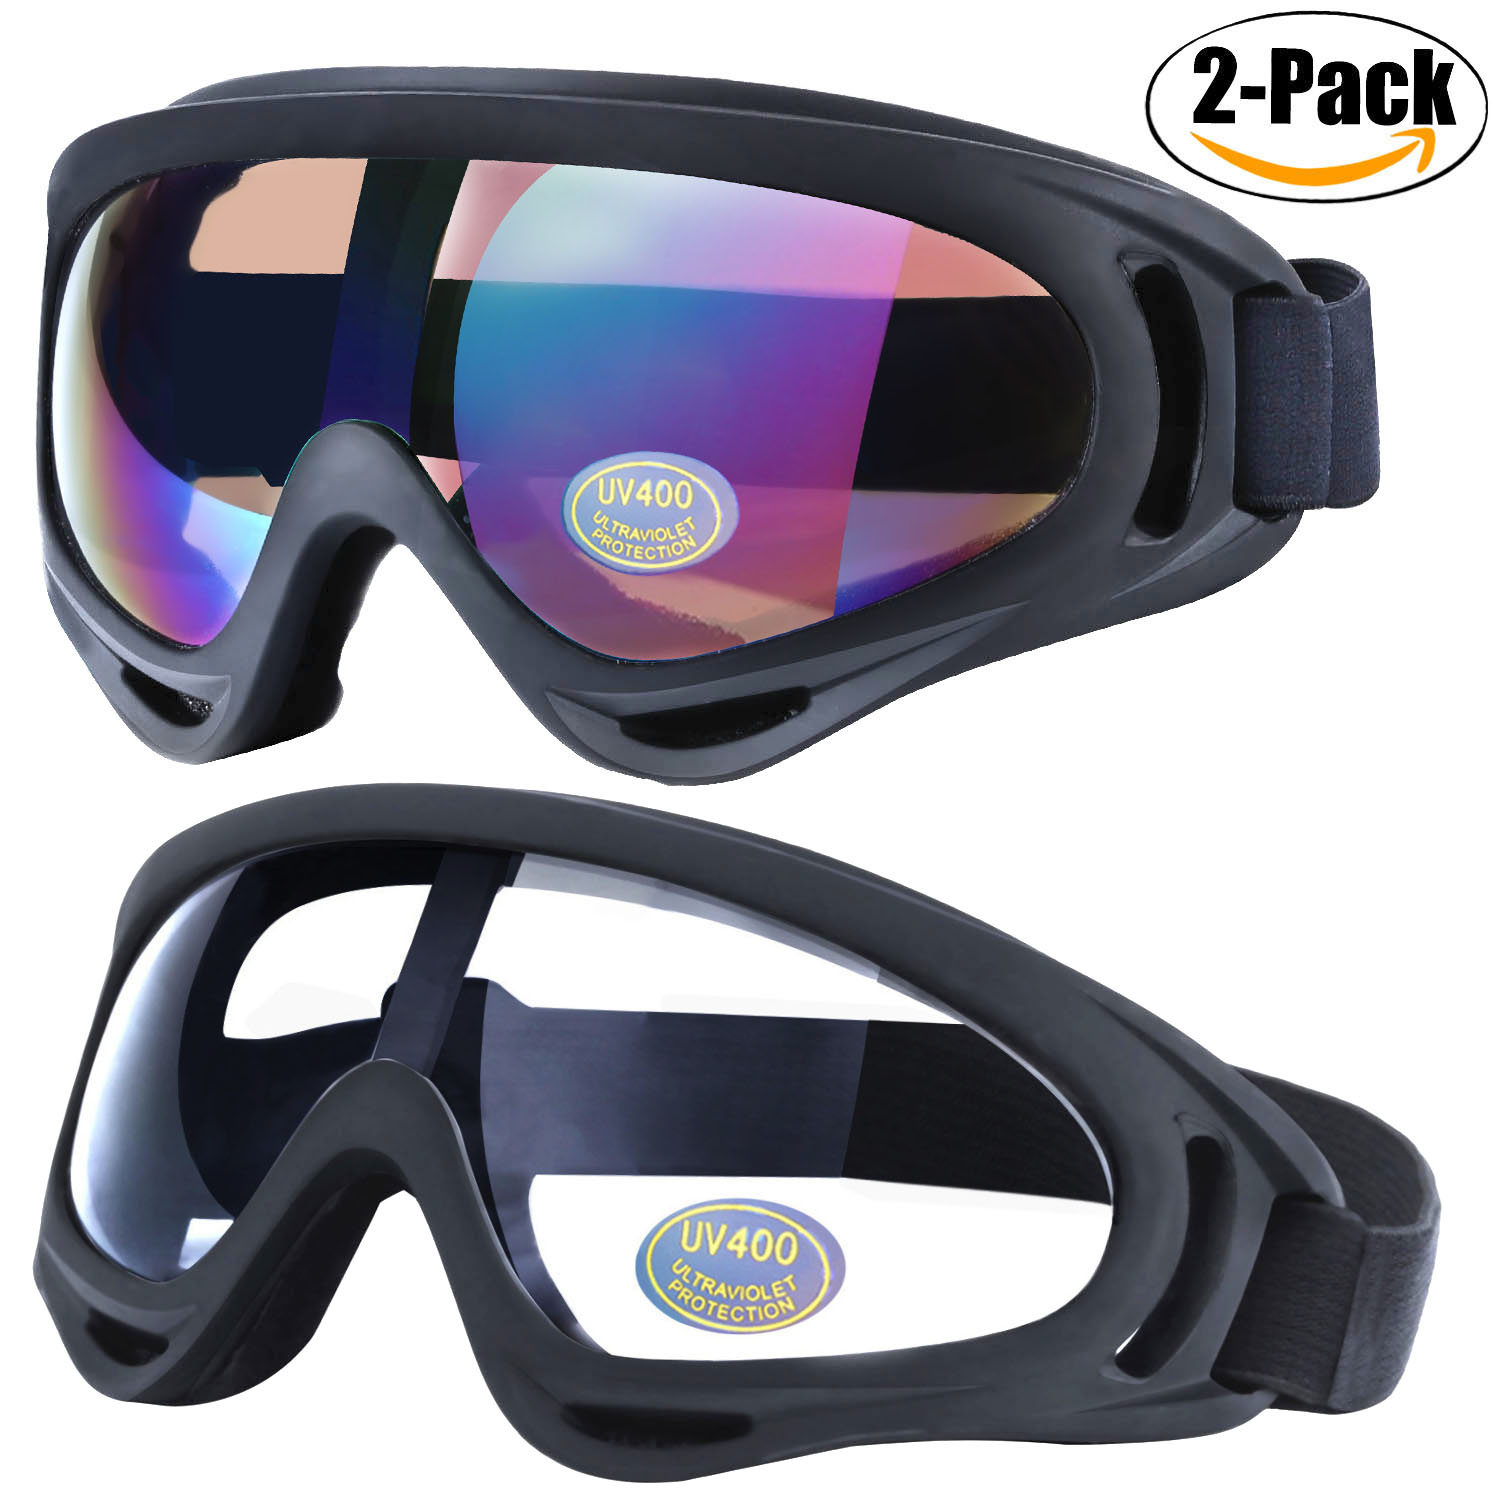 Outgeek 2Pcs Unisex Professional Ski Snow Snowboard Goggles Windproof Adjustable UV Protective Eyewear for Outdoor... by Outgeek